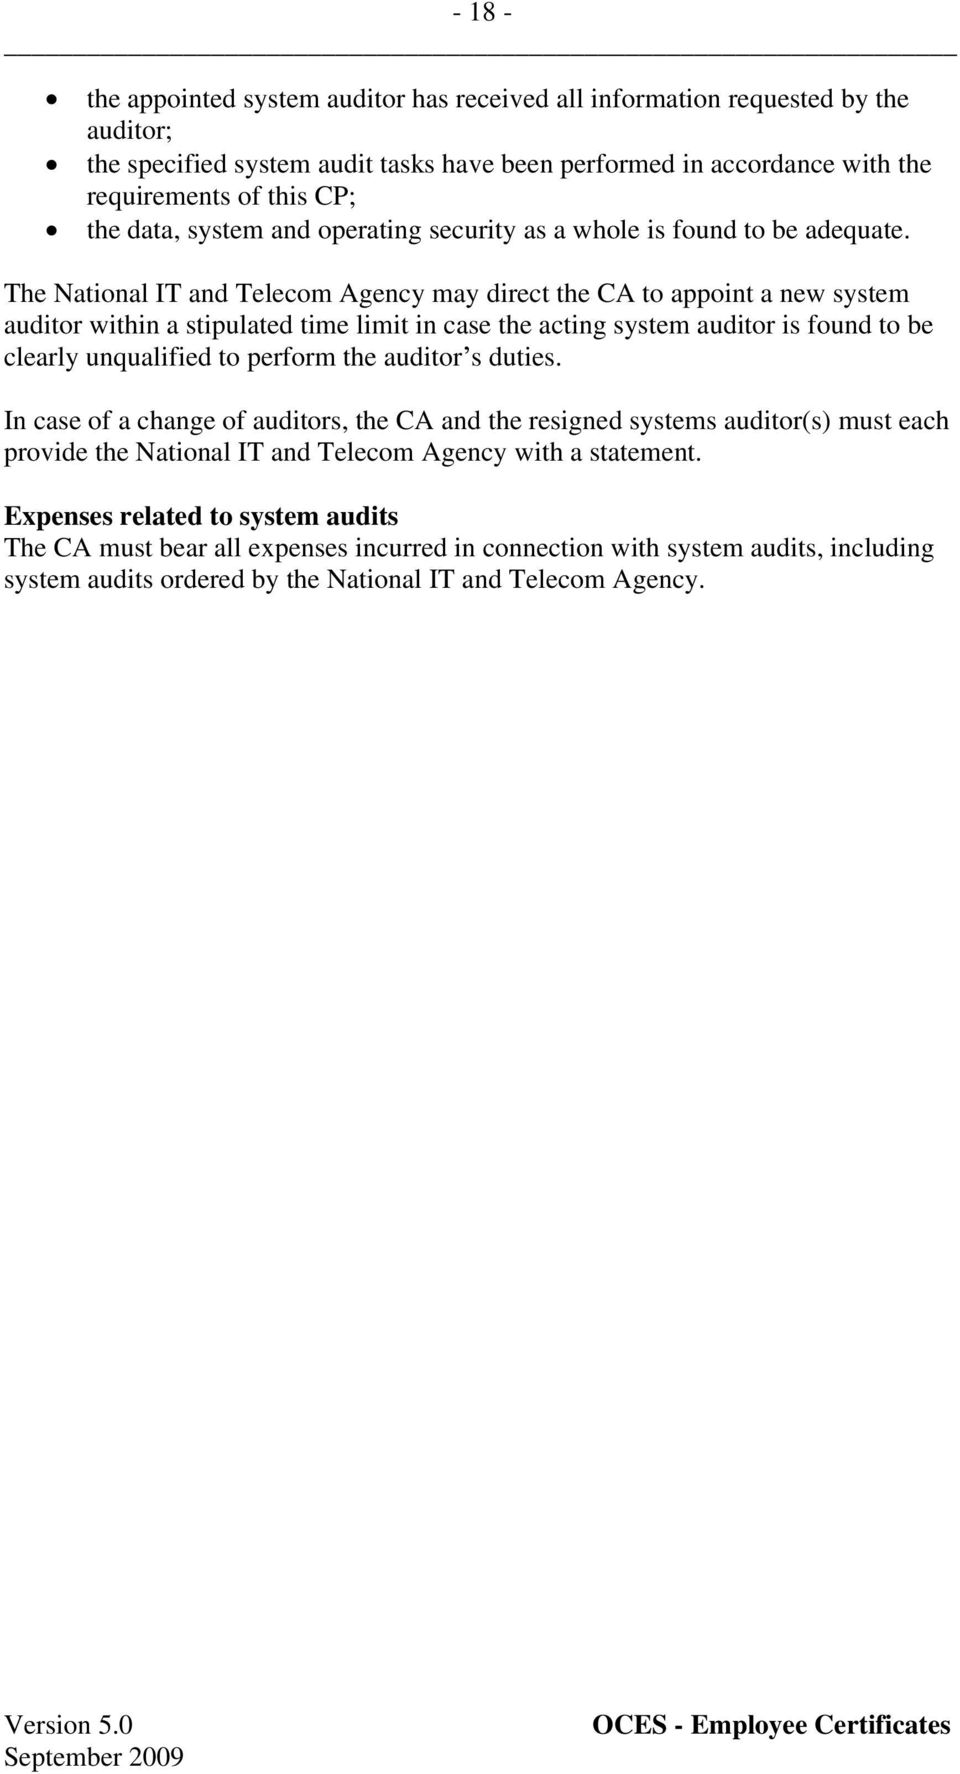 The National IT and Telecom Agency may direct the CA to appoint a new system auditor within a stipulated time limit in case the acting system auditor is found to be clearly unqualified to perform the